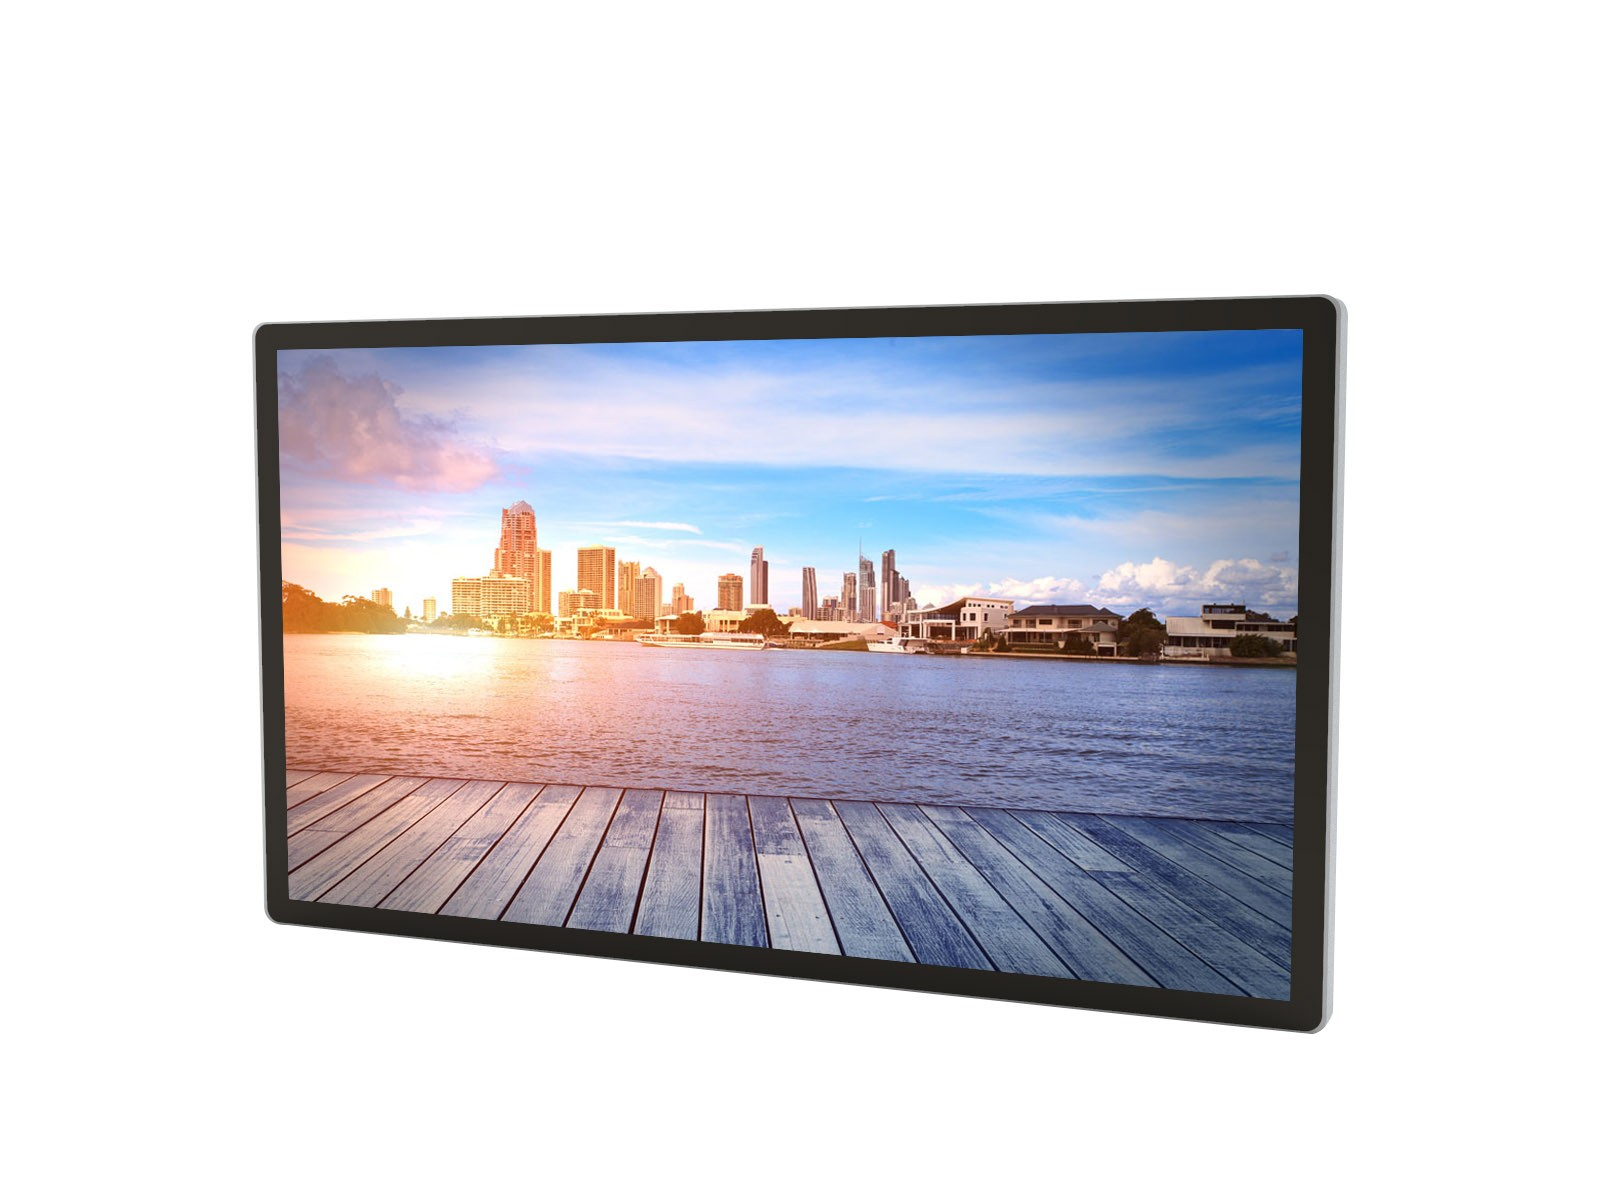 MG-GB550 Wall-mounted Digital Signage